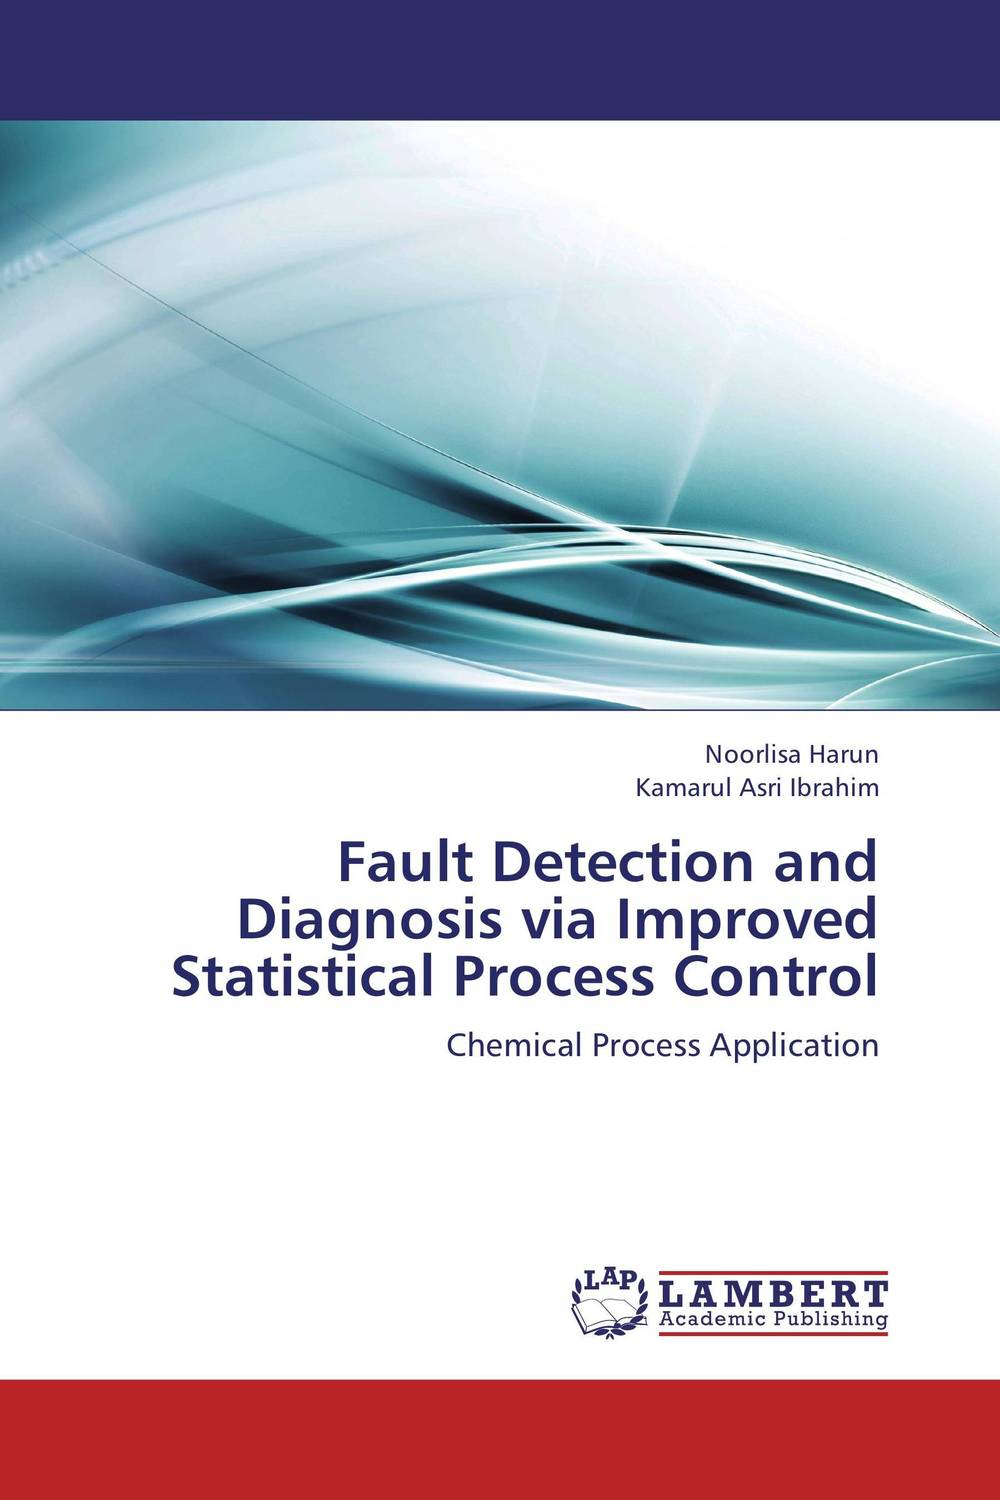 цена на Fault Detection and Diagnosis via Improved Statistical Process Control